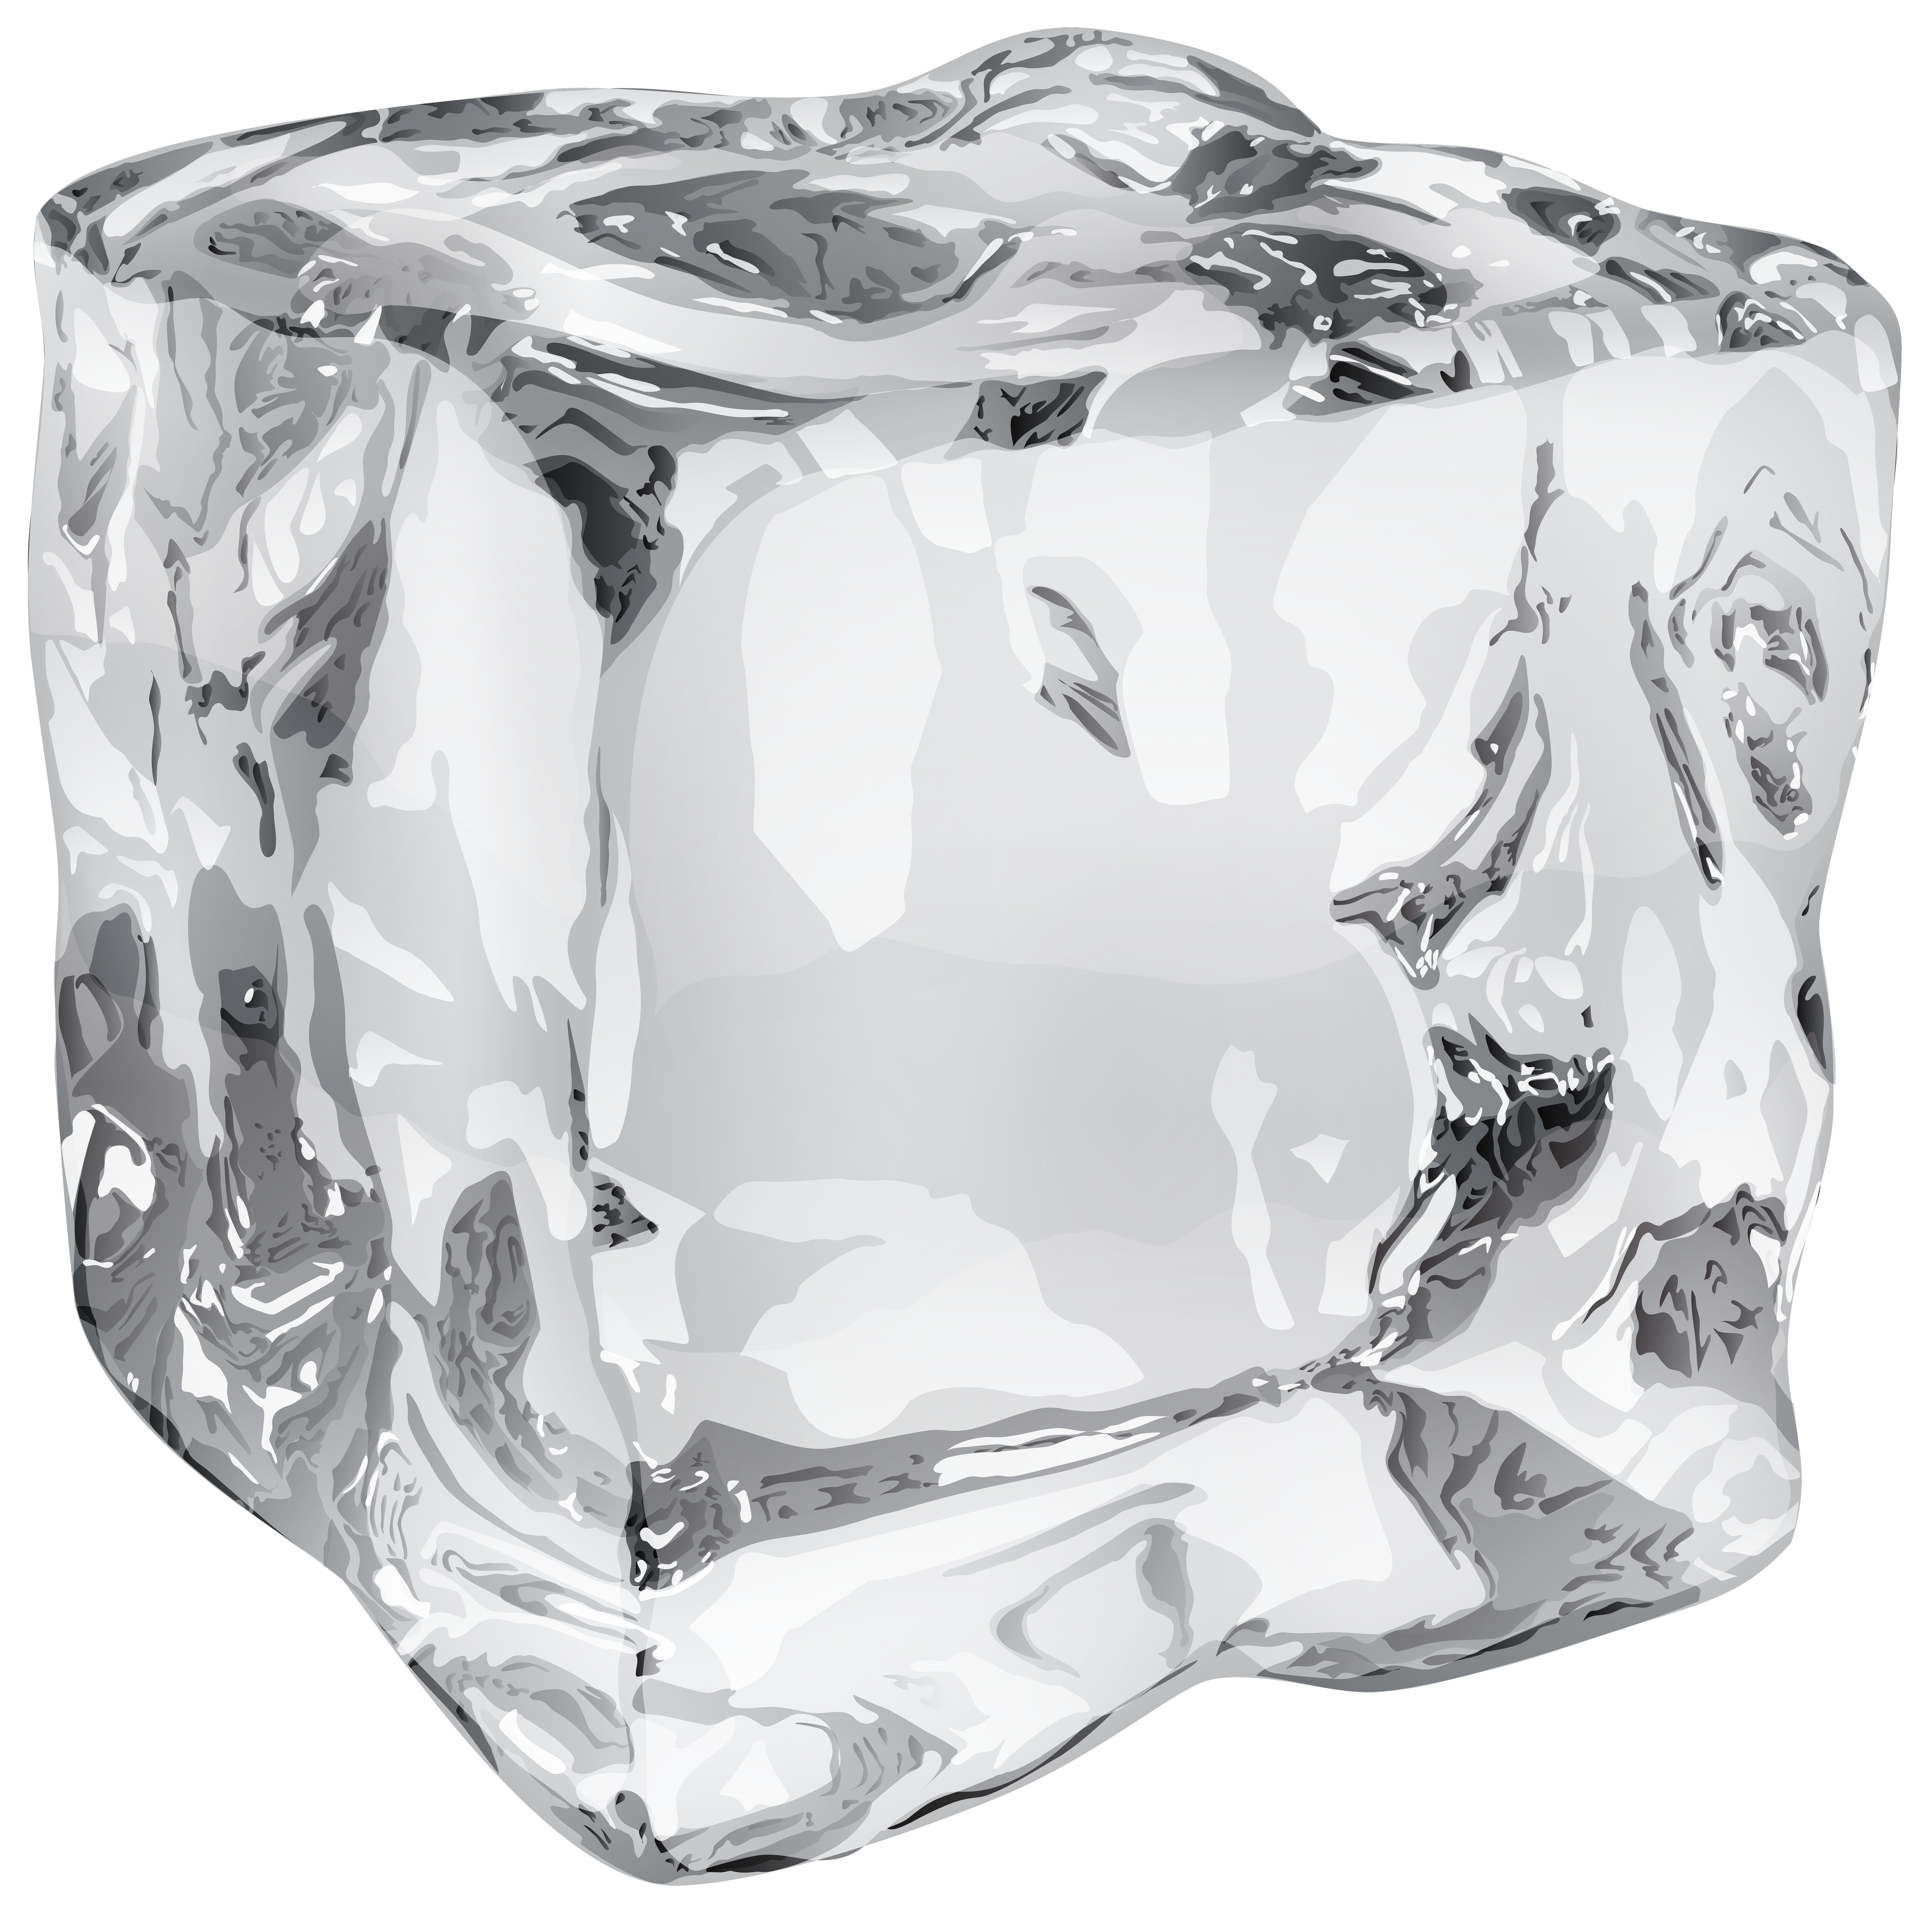 Transparent photography ice. Cube png clip art